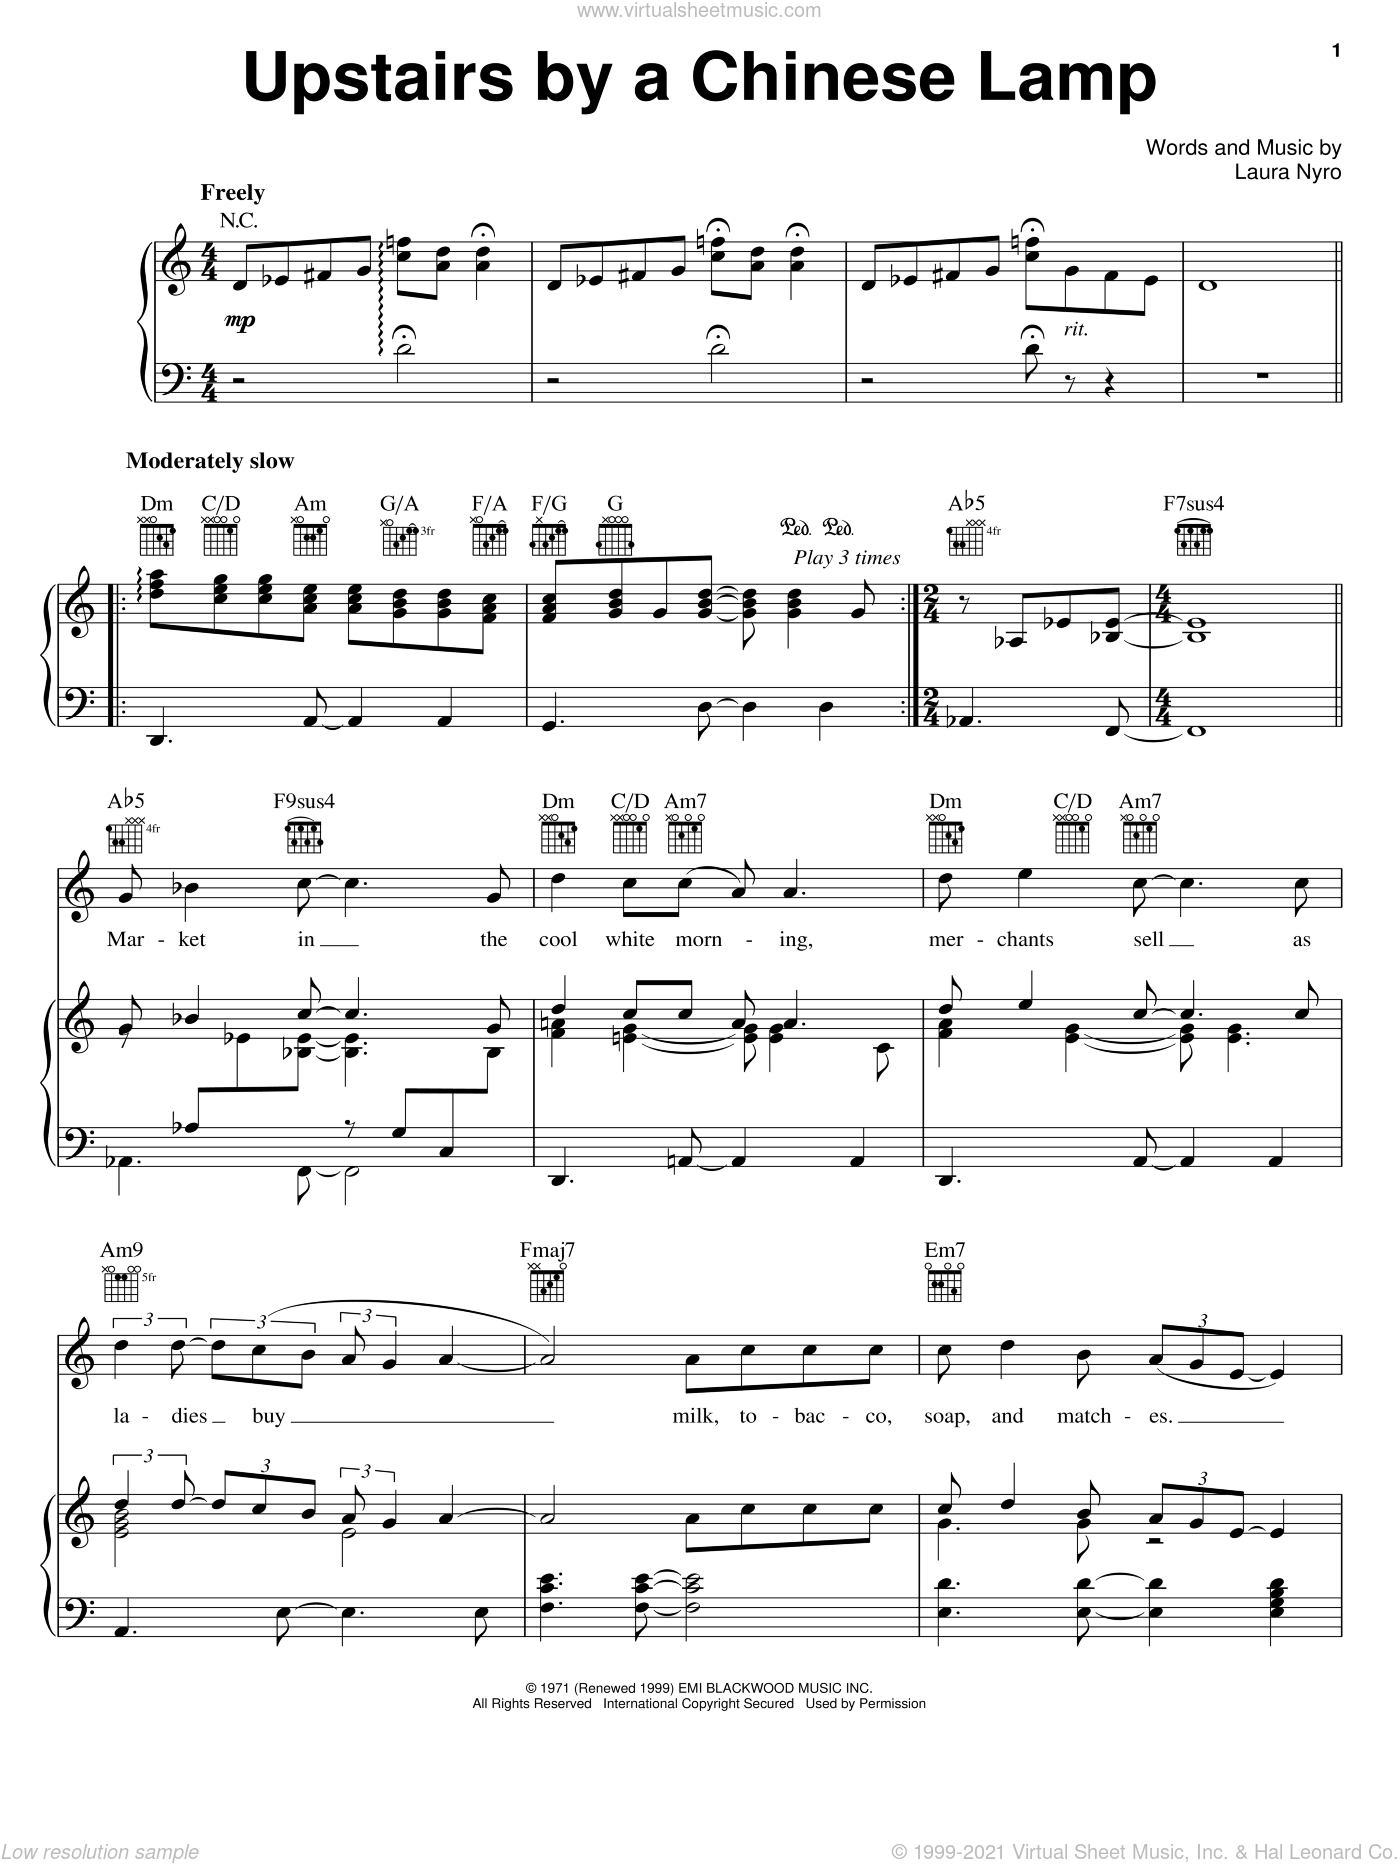 Upstairs By A Chinese Lamp sheet music for voice, piano or guitar by Laura Nyro, intermediate skill level